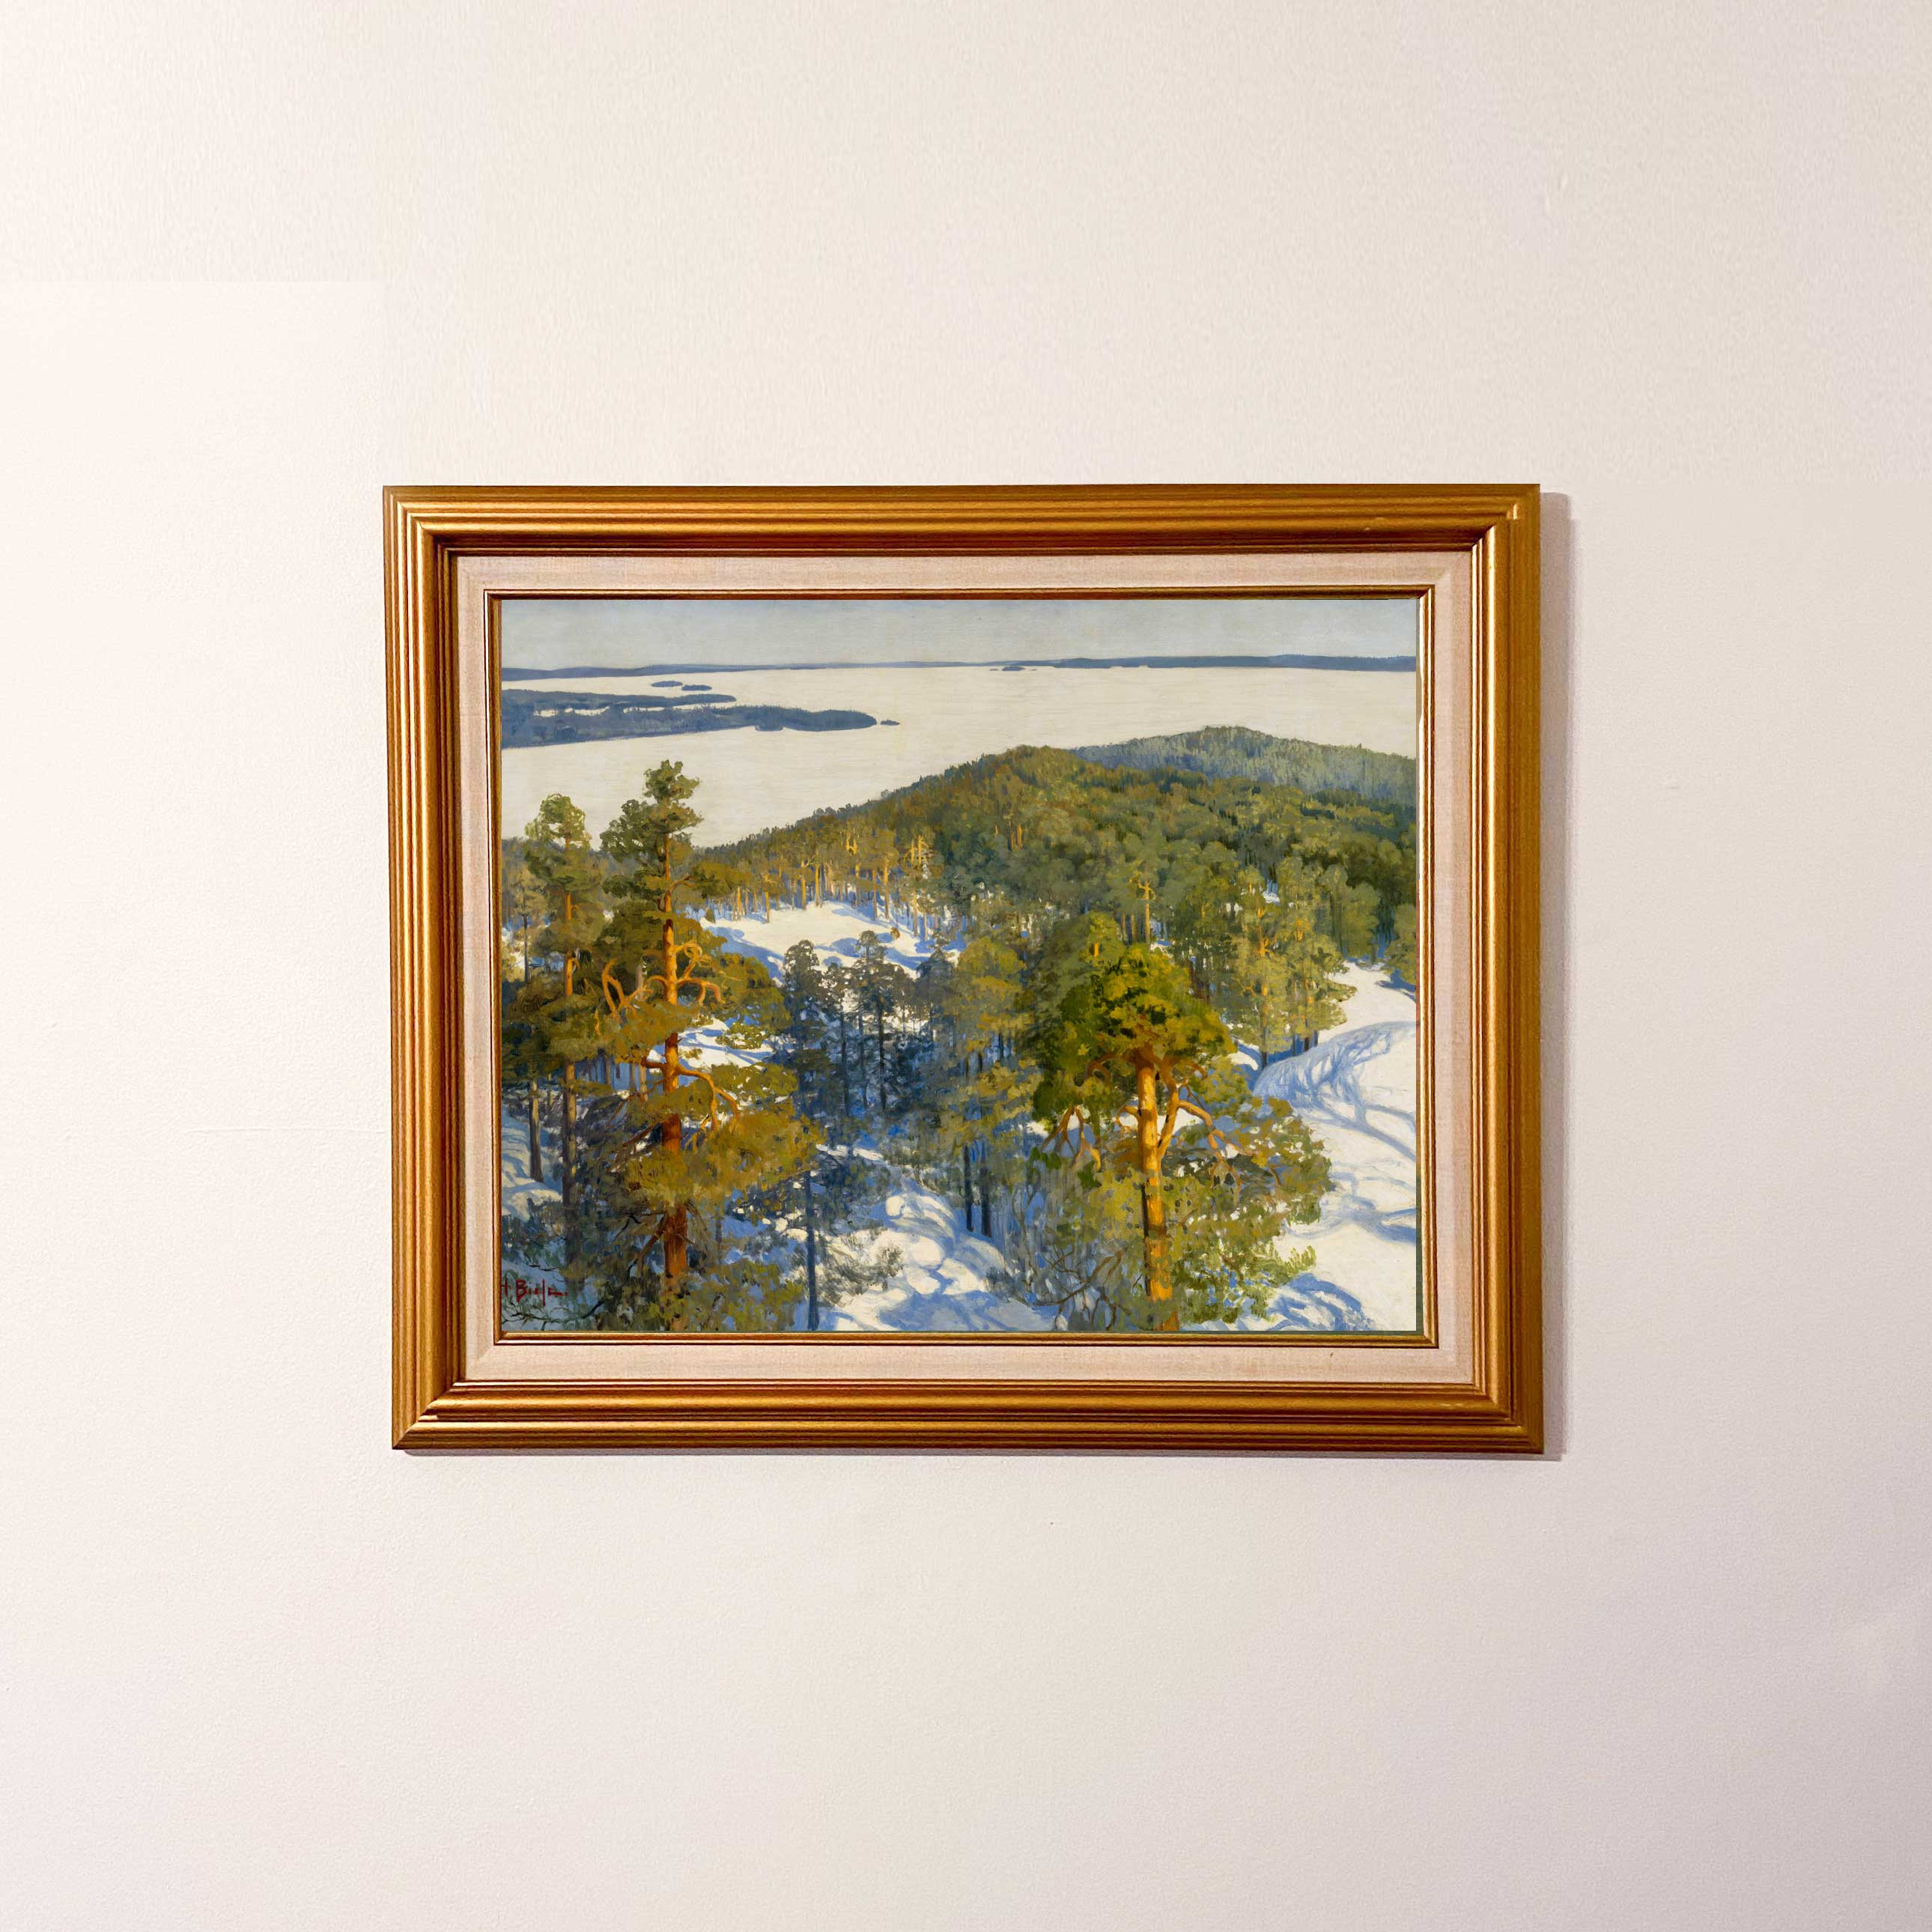 Set atop a mountain, gazing down at the white landscape below. View from the Ridge is a breathtaking painting of an evergreen forest high atop the ridge overlooking the lake below.